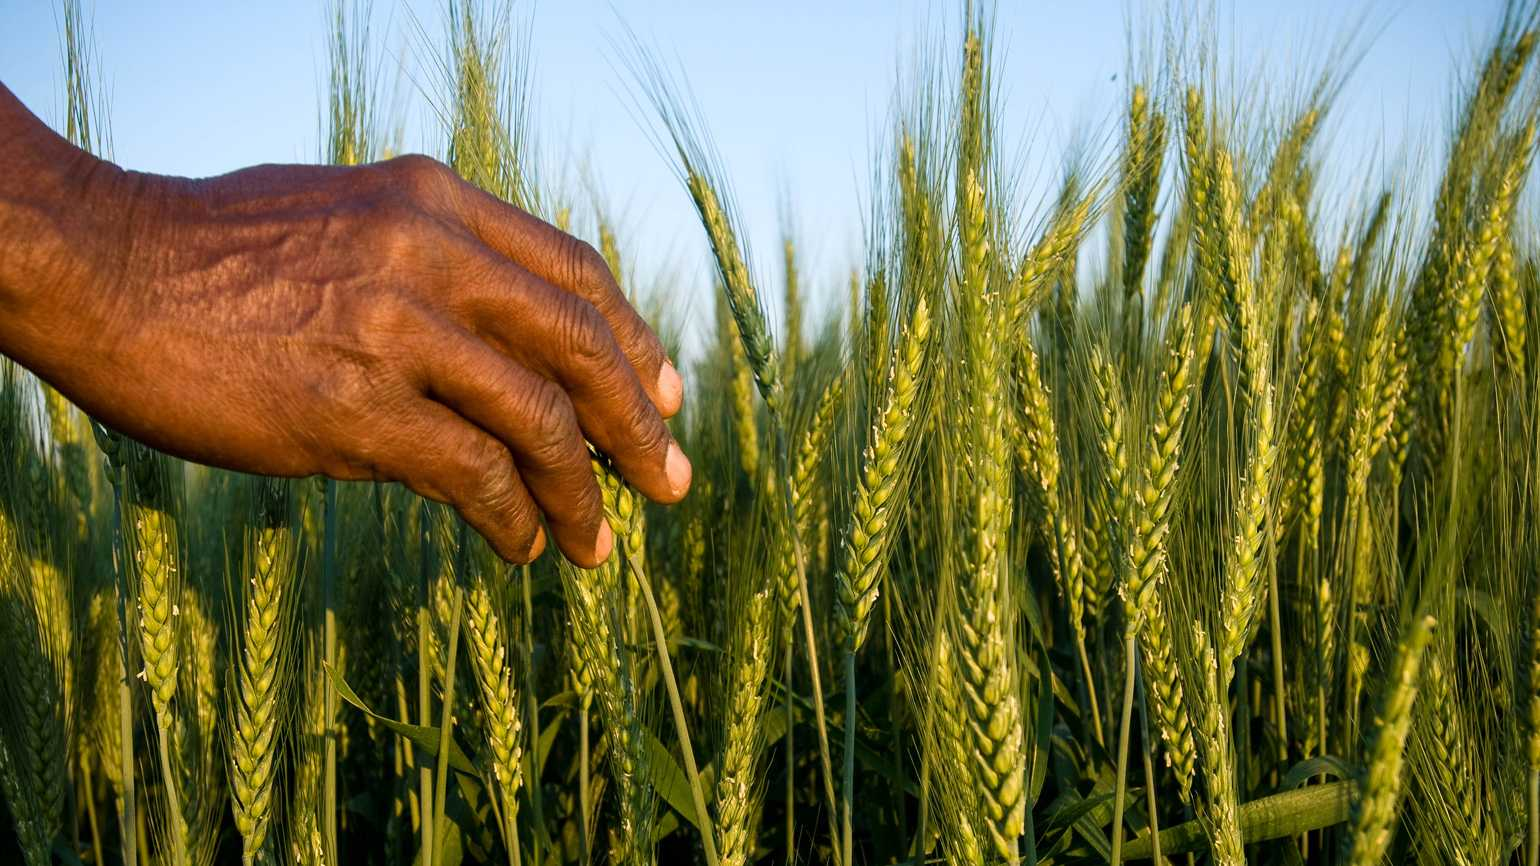 A hand reaching out to pick wheat grains.